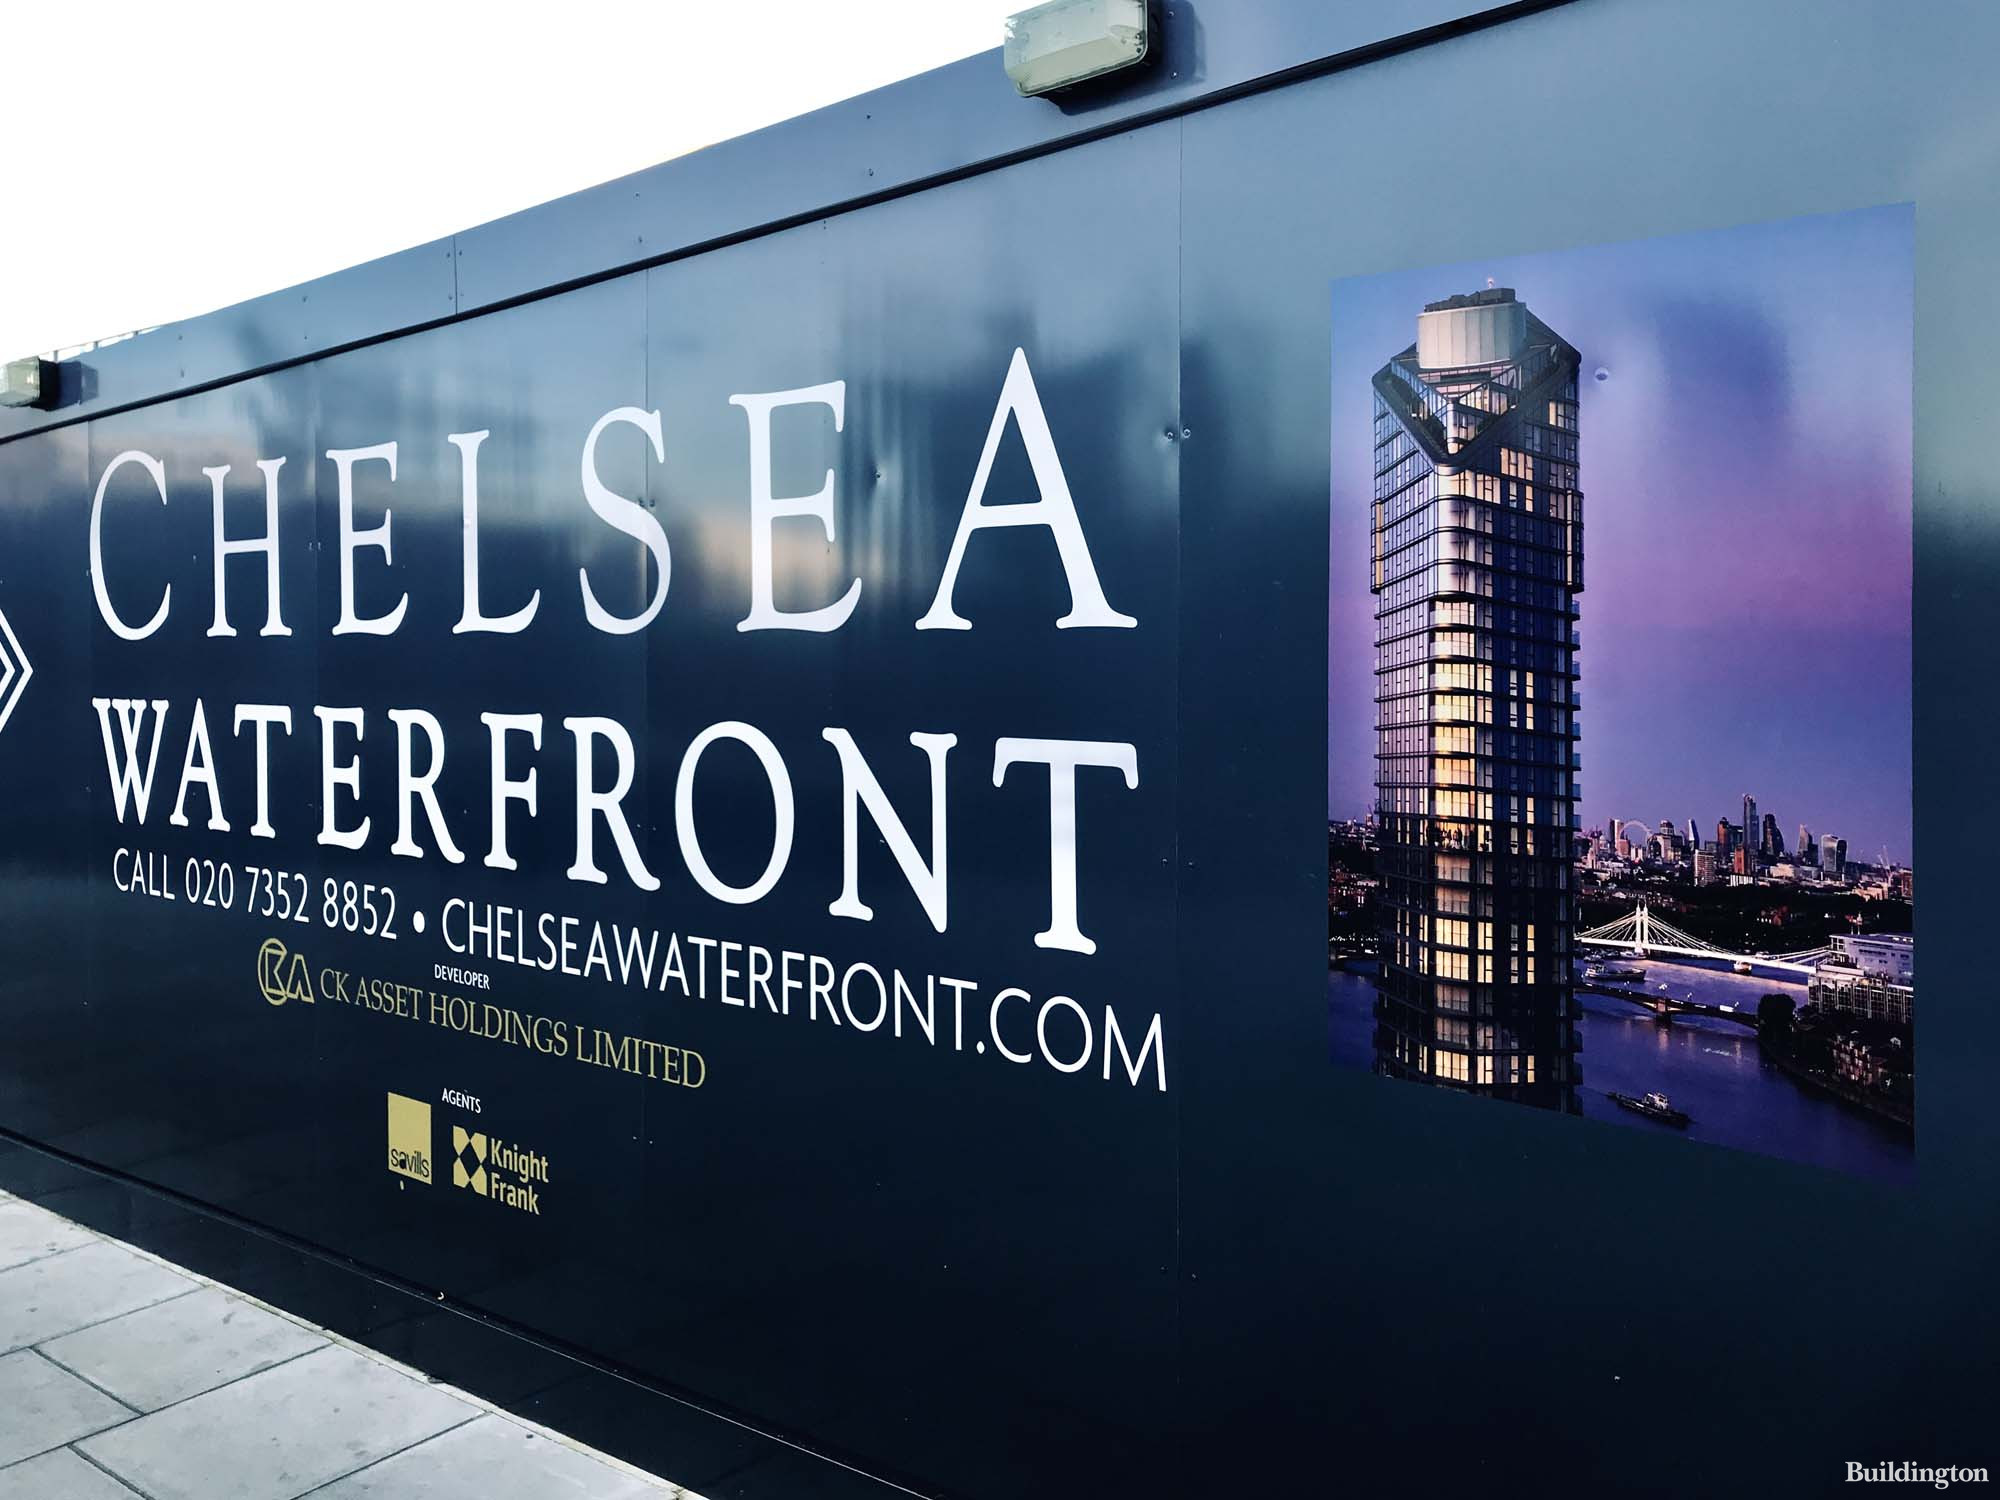 Chelsea Waterfront hoarding. CK Asset Holdings Limited with Savills and Knight Frank.